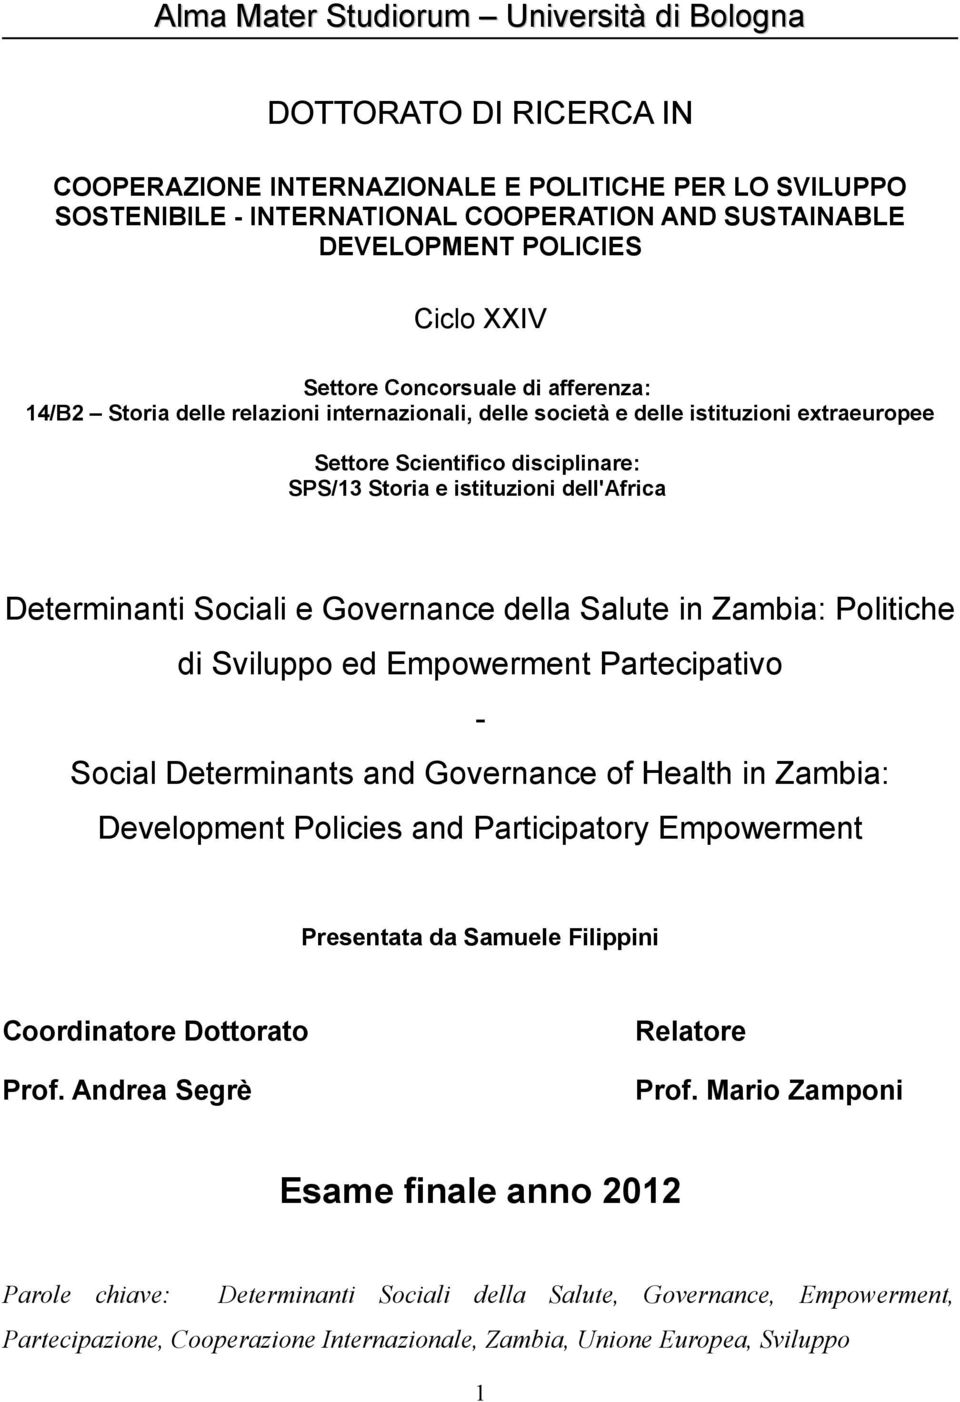 dell'africa Determinanti Sociali e Governance della Salute in Zambia: Politiche di Sviluppo ed Empowerment Partecipativo Social Determinants and Governance of Health in Zambia: Development Policies